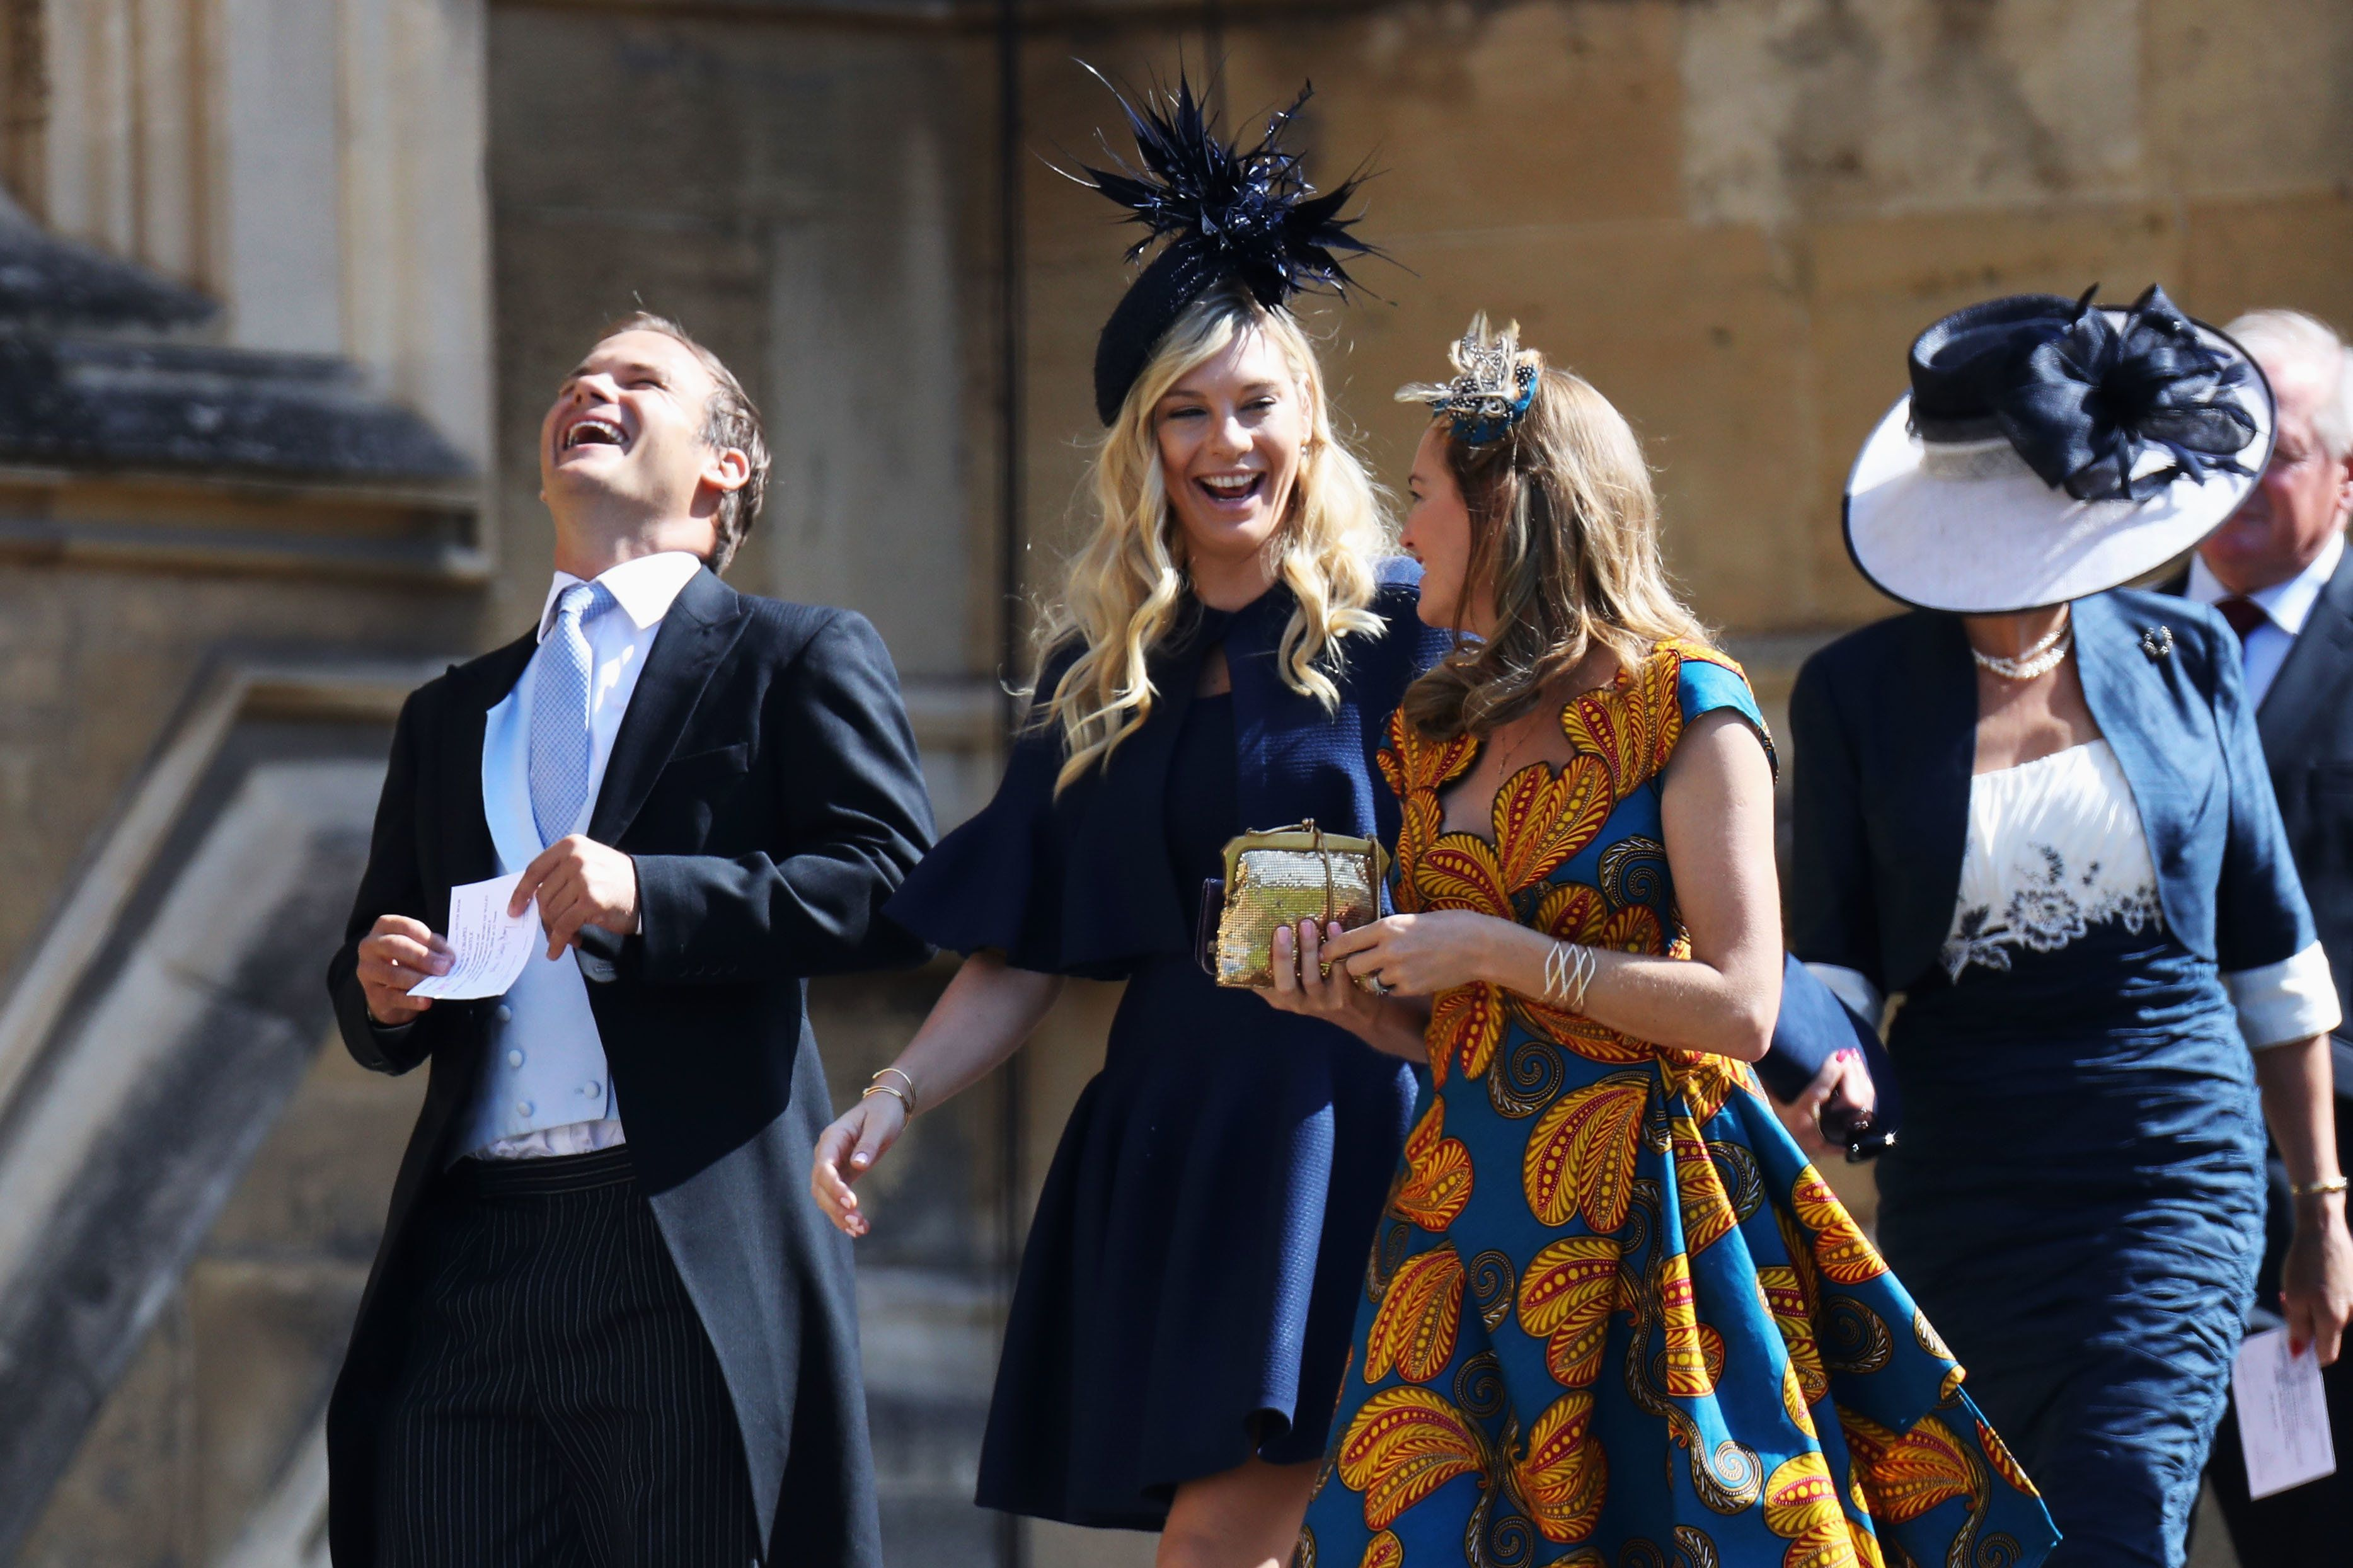 """Chelsy Davy, center, was <a href=""""https://www.huffingtonpost.com/entry/prince-harry-ex-girlfriends-royal-wedding_us_5b002402e"""